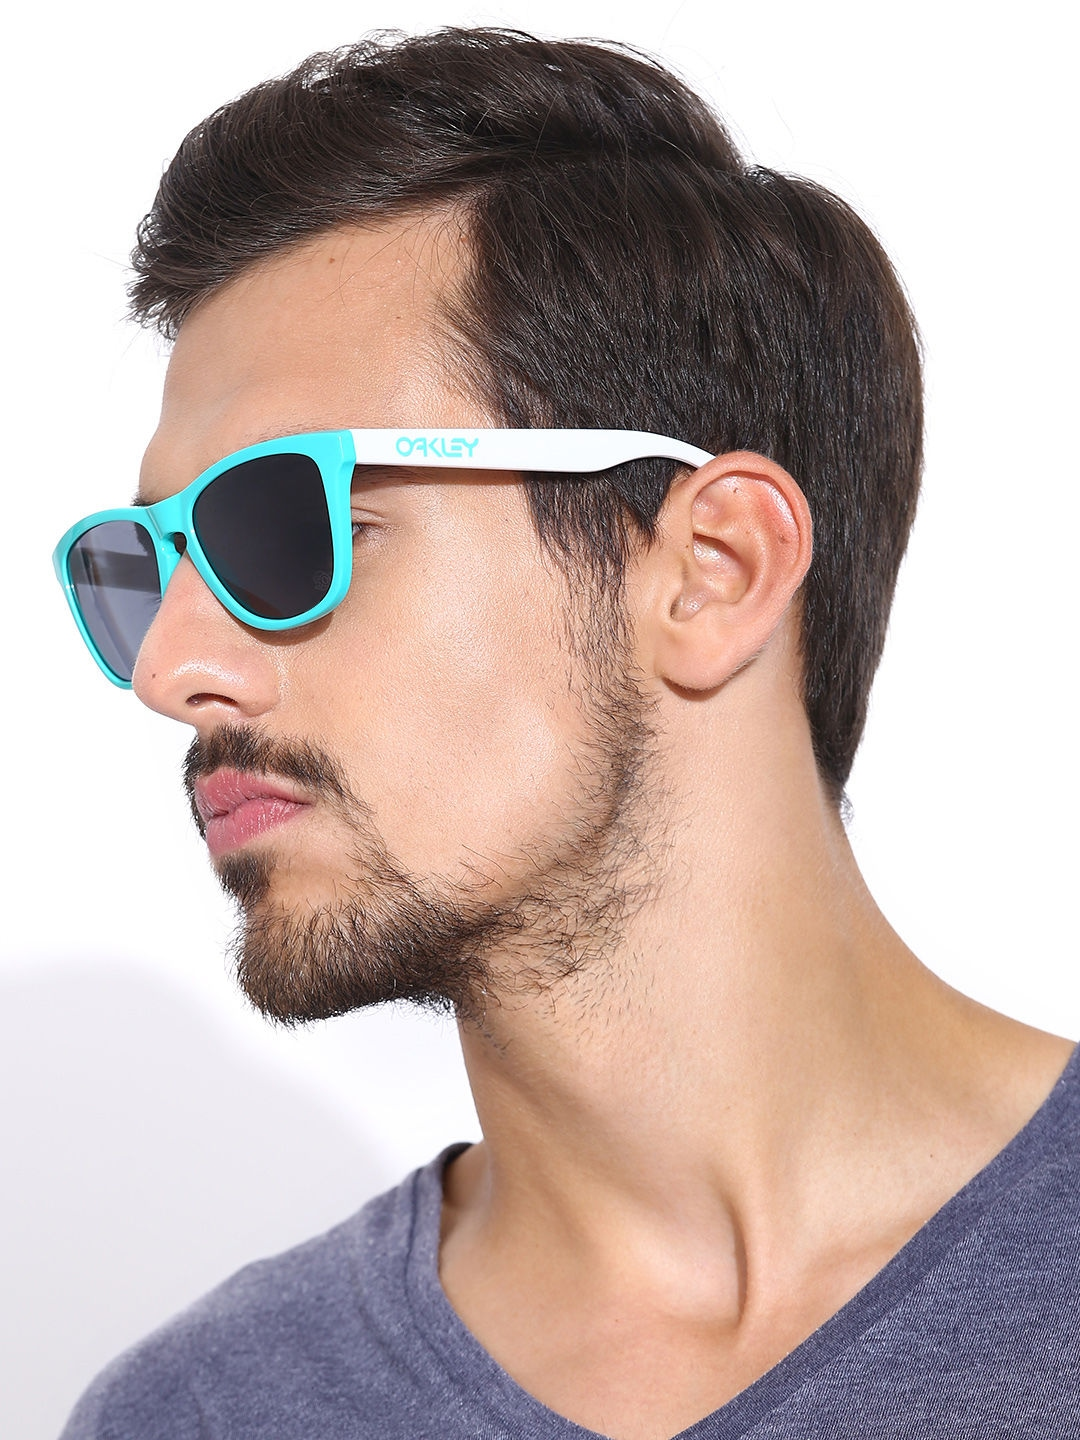 Pink Oakley Sunglasses for Kids at SmartBuyGlasses India